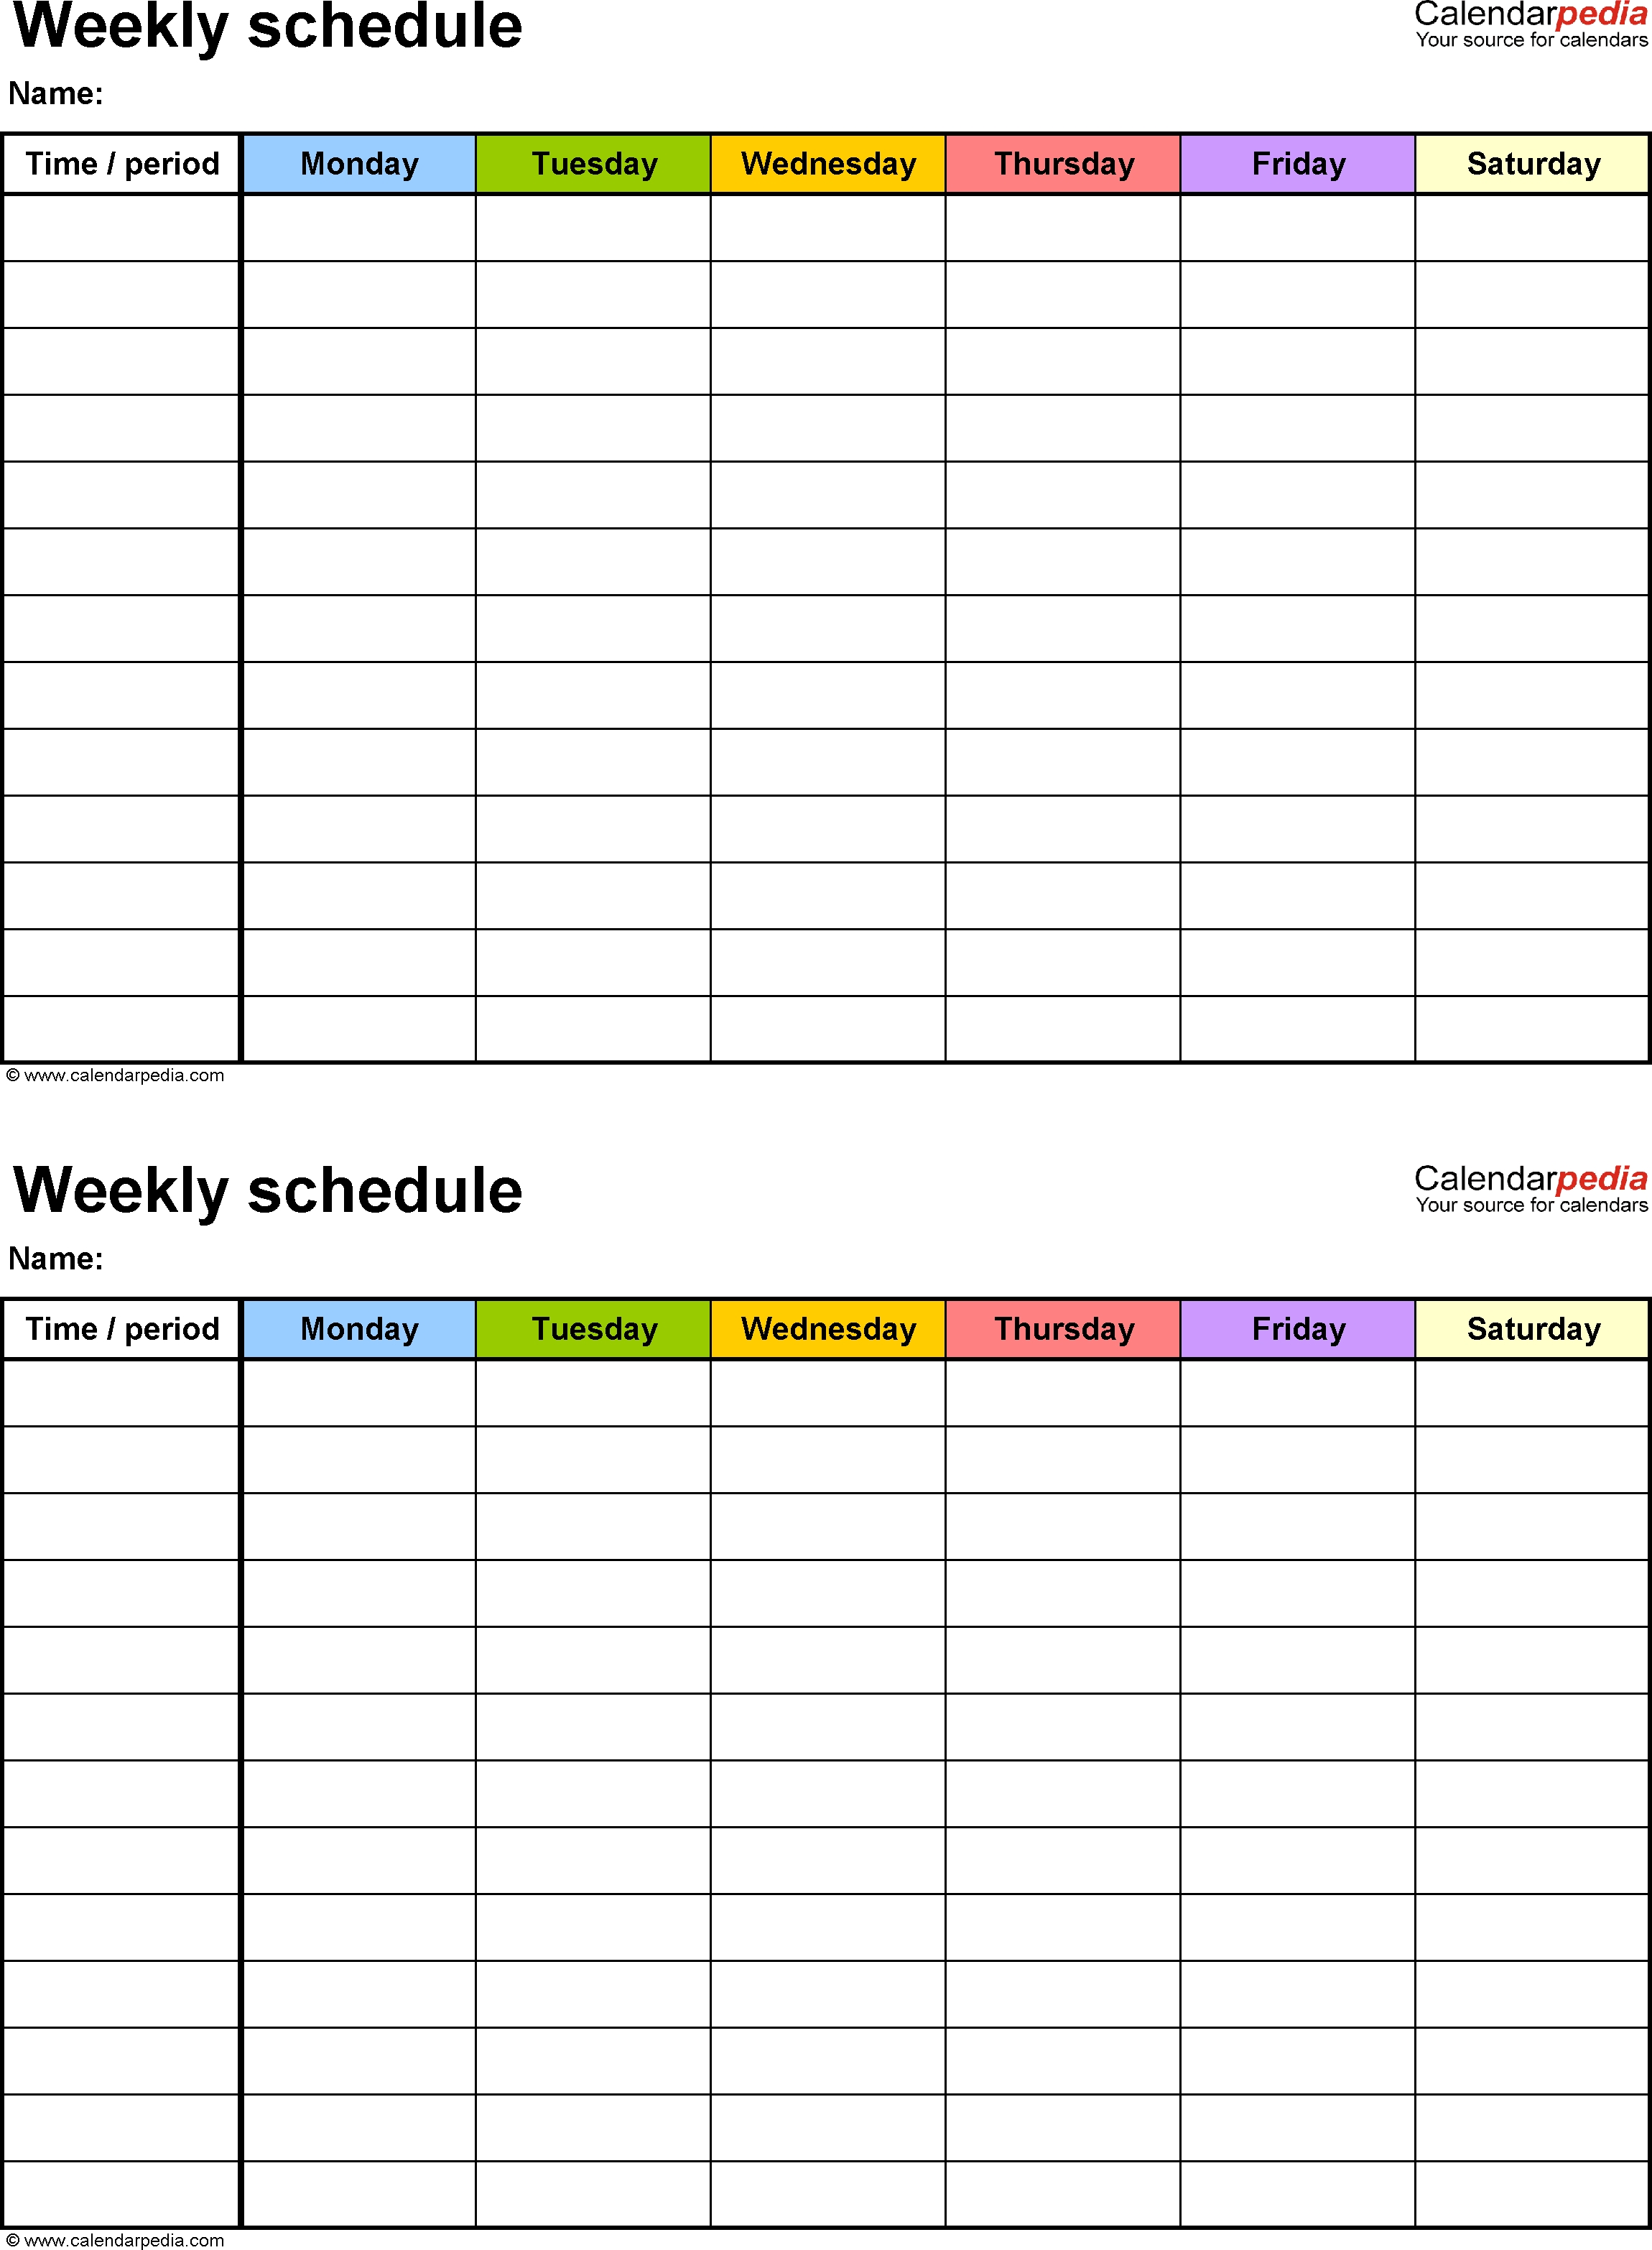 Free Weekly Schedule Templates For Pdf - 18 Templates for 7 Day Week Schedule Calendar Pdf